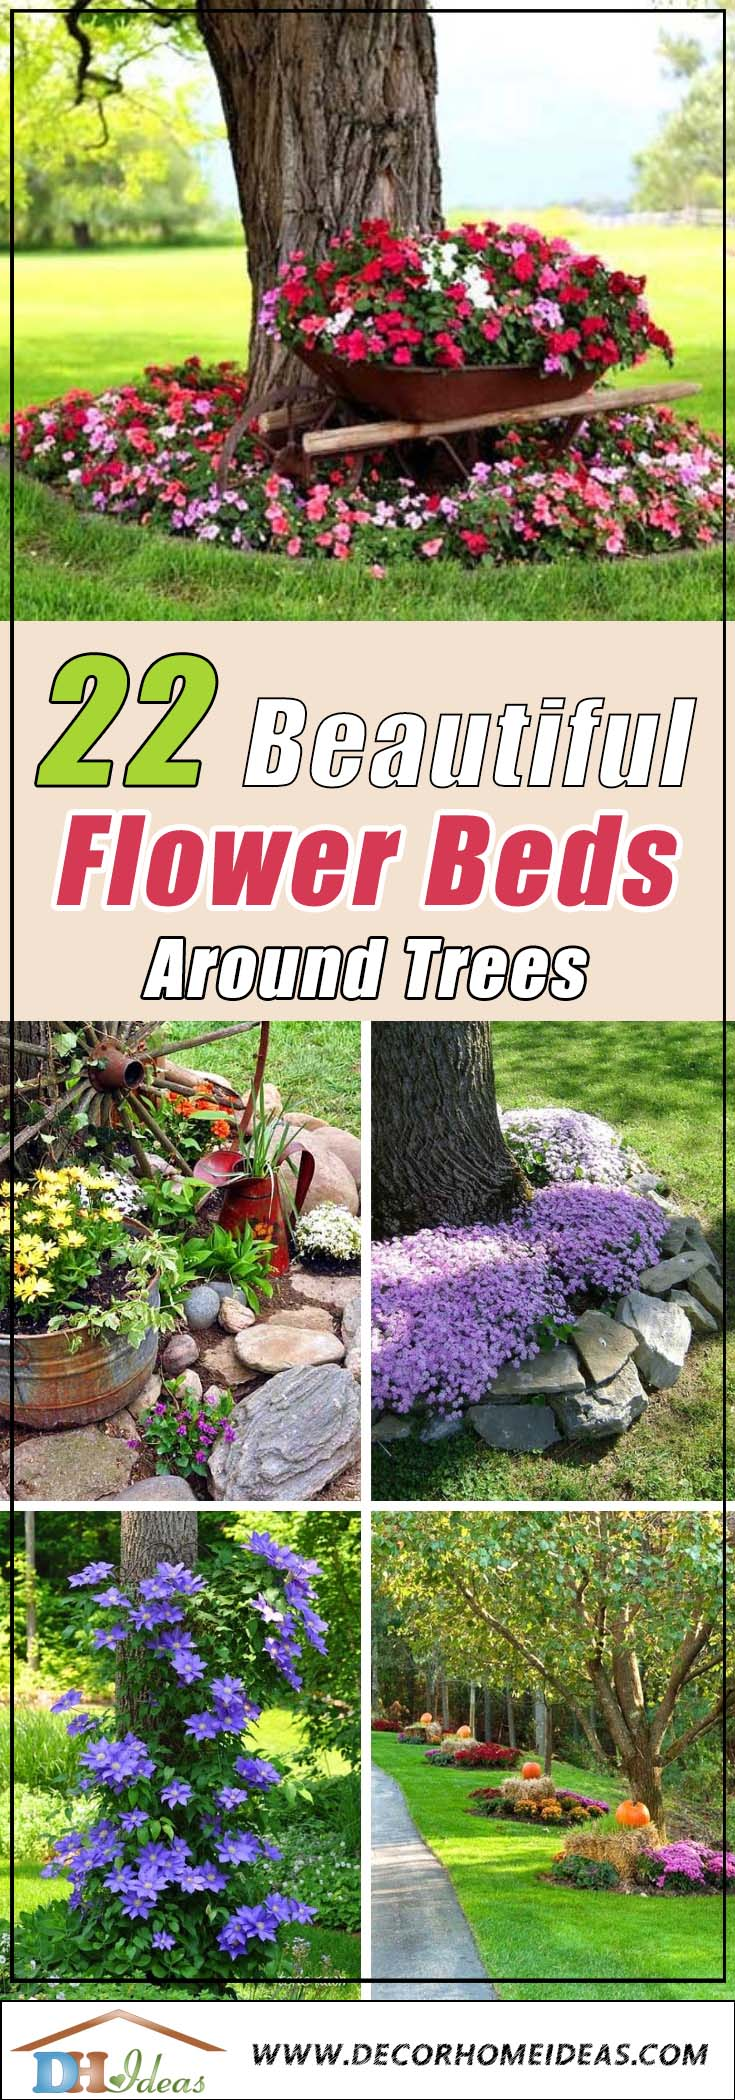 22 Beautiful Flower Beds Around Trees Decor Home Ideas